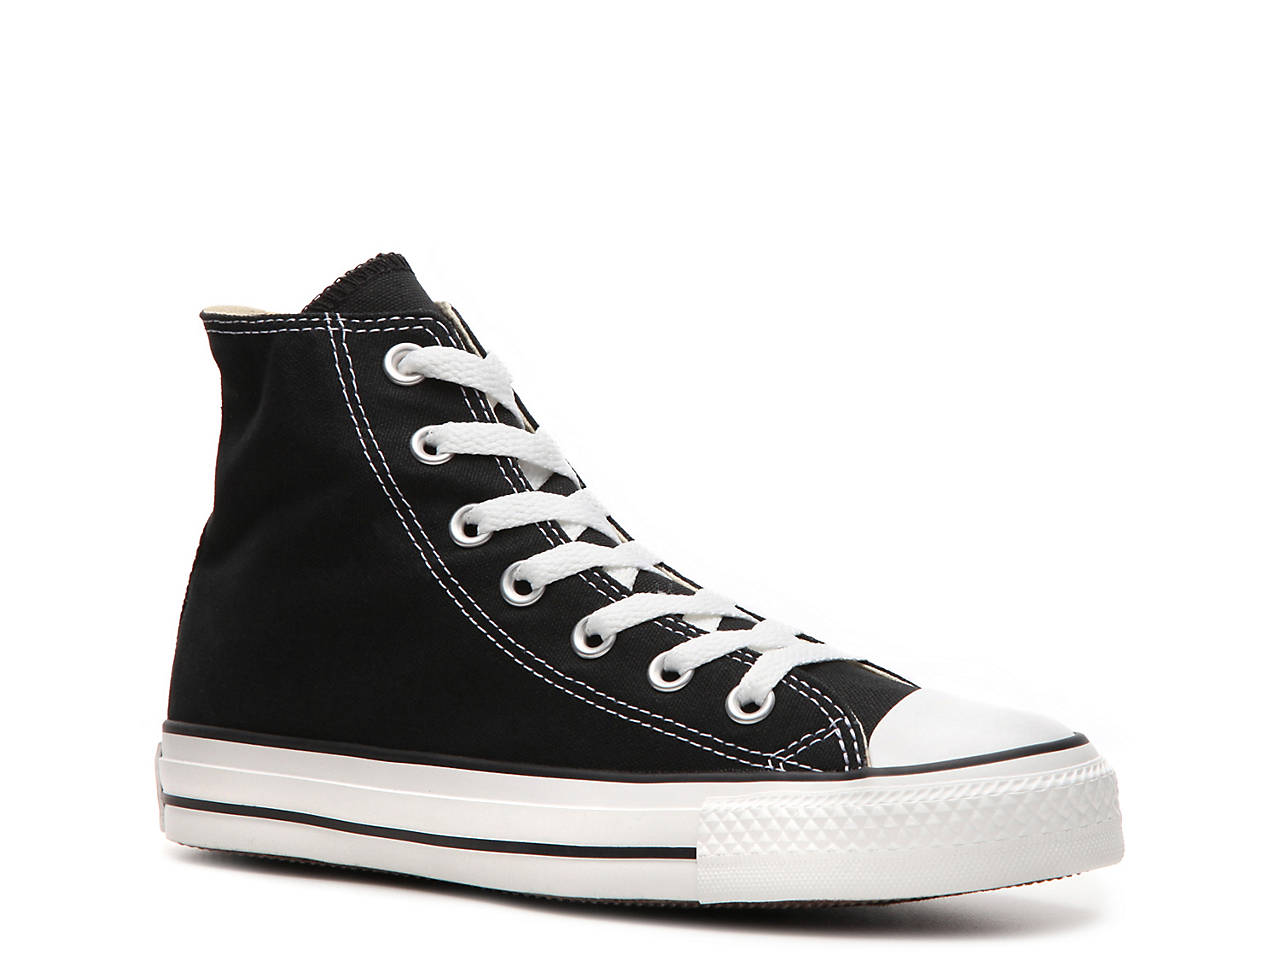 6344ba121ae2 Converse Chuck Taylor All Star High-Top Sneaker - Women s Women s ...